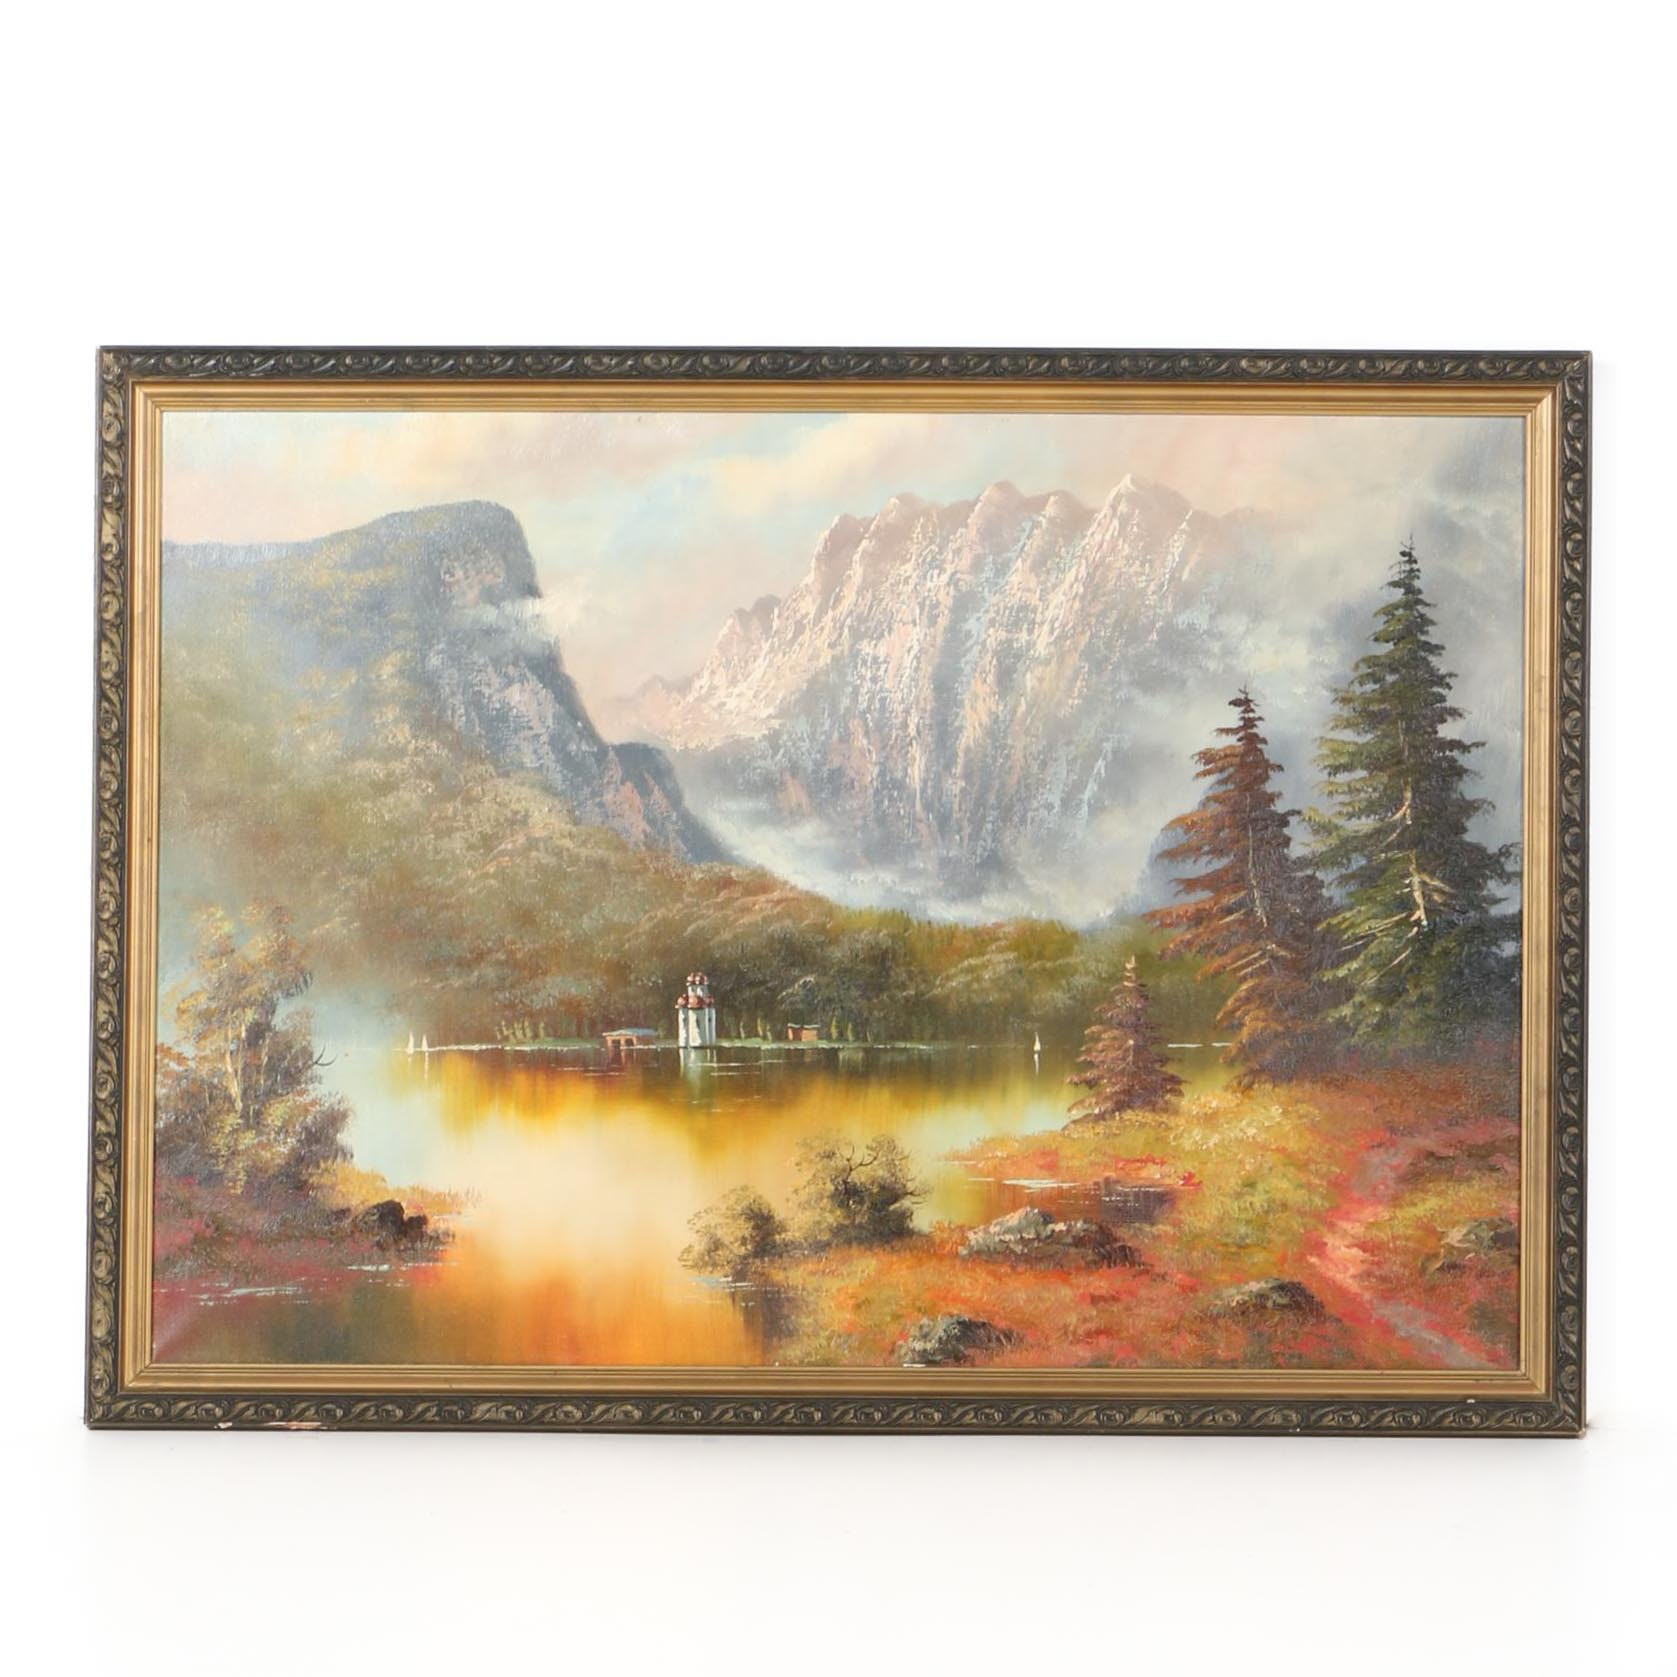 Oil Painting on Canvas of Mountain and Lake